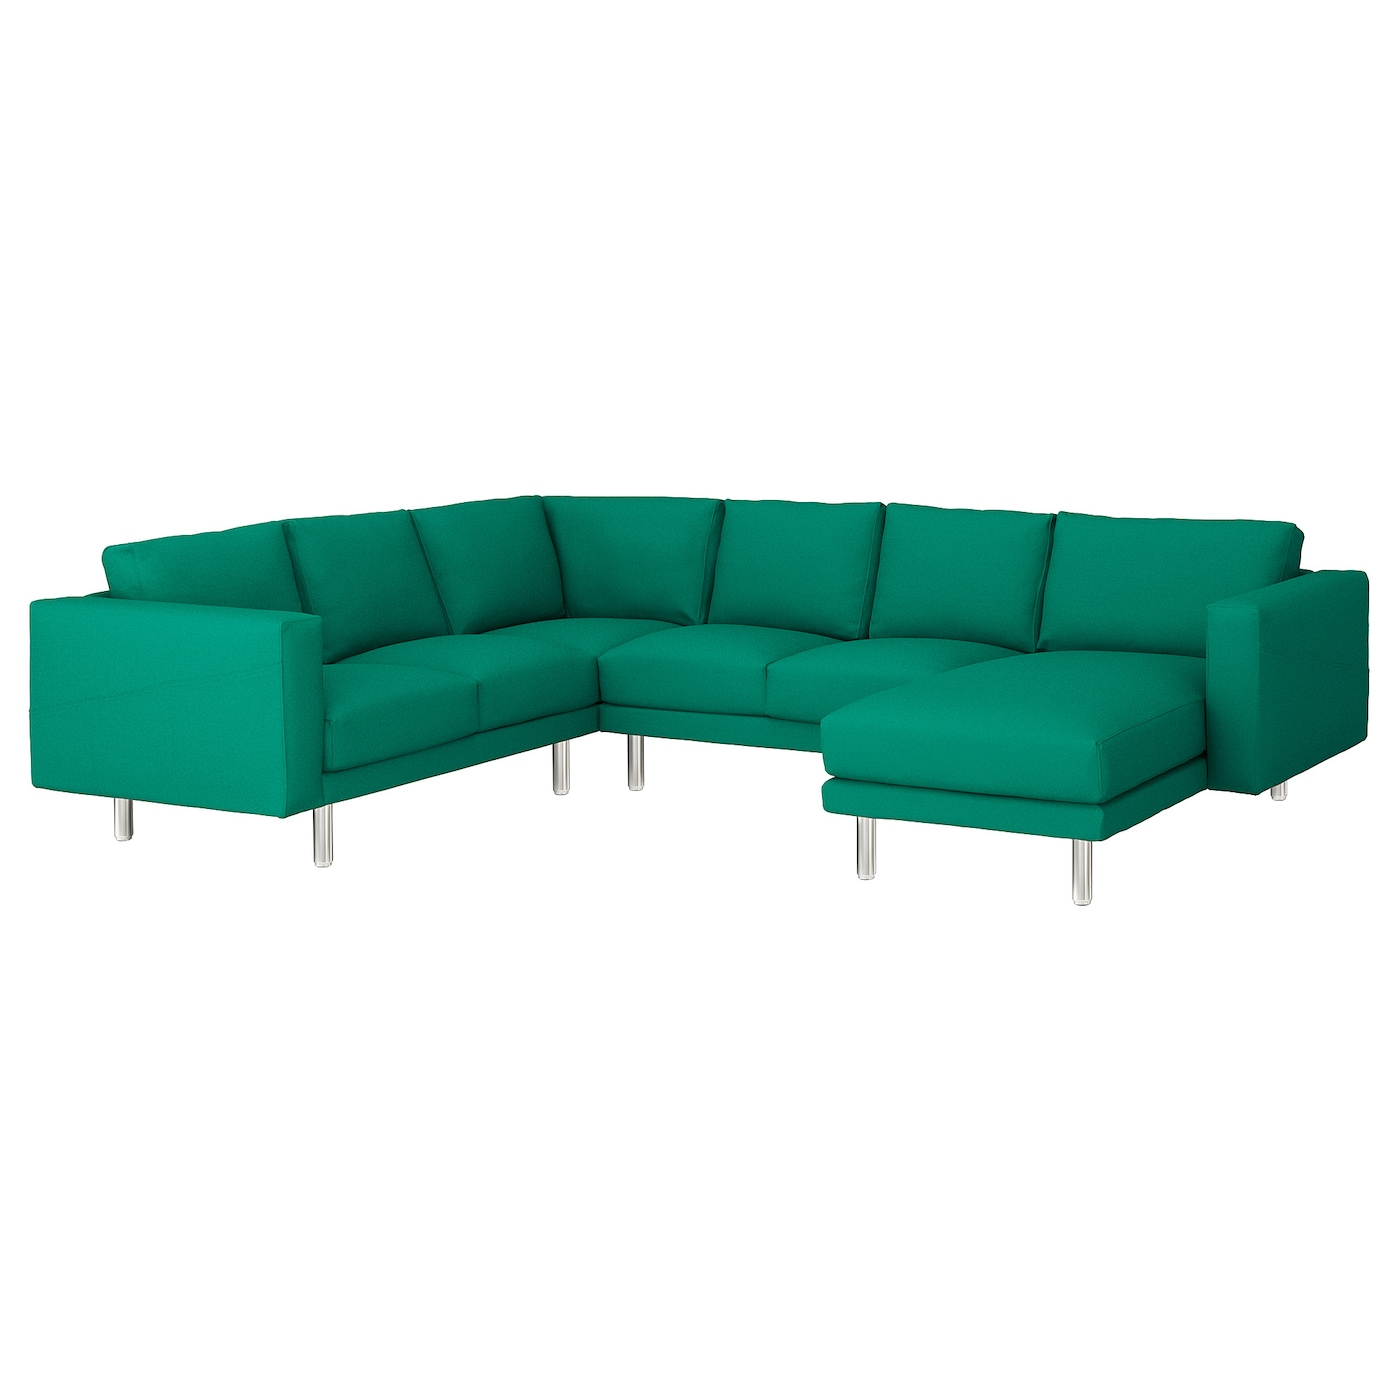 Norsborg corner sofa 5 seat with chaise longue gr sbo for Chaise longue en aluminium